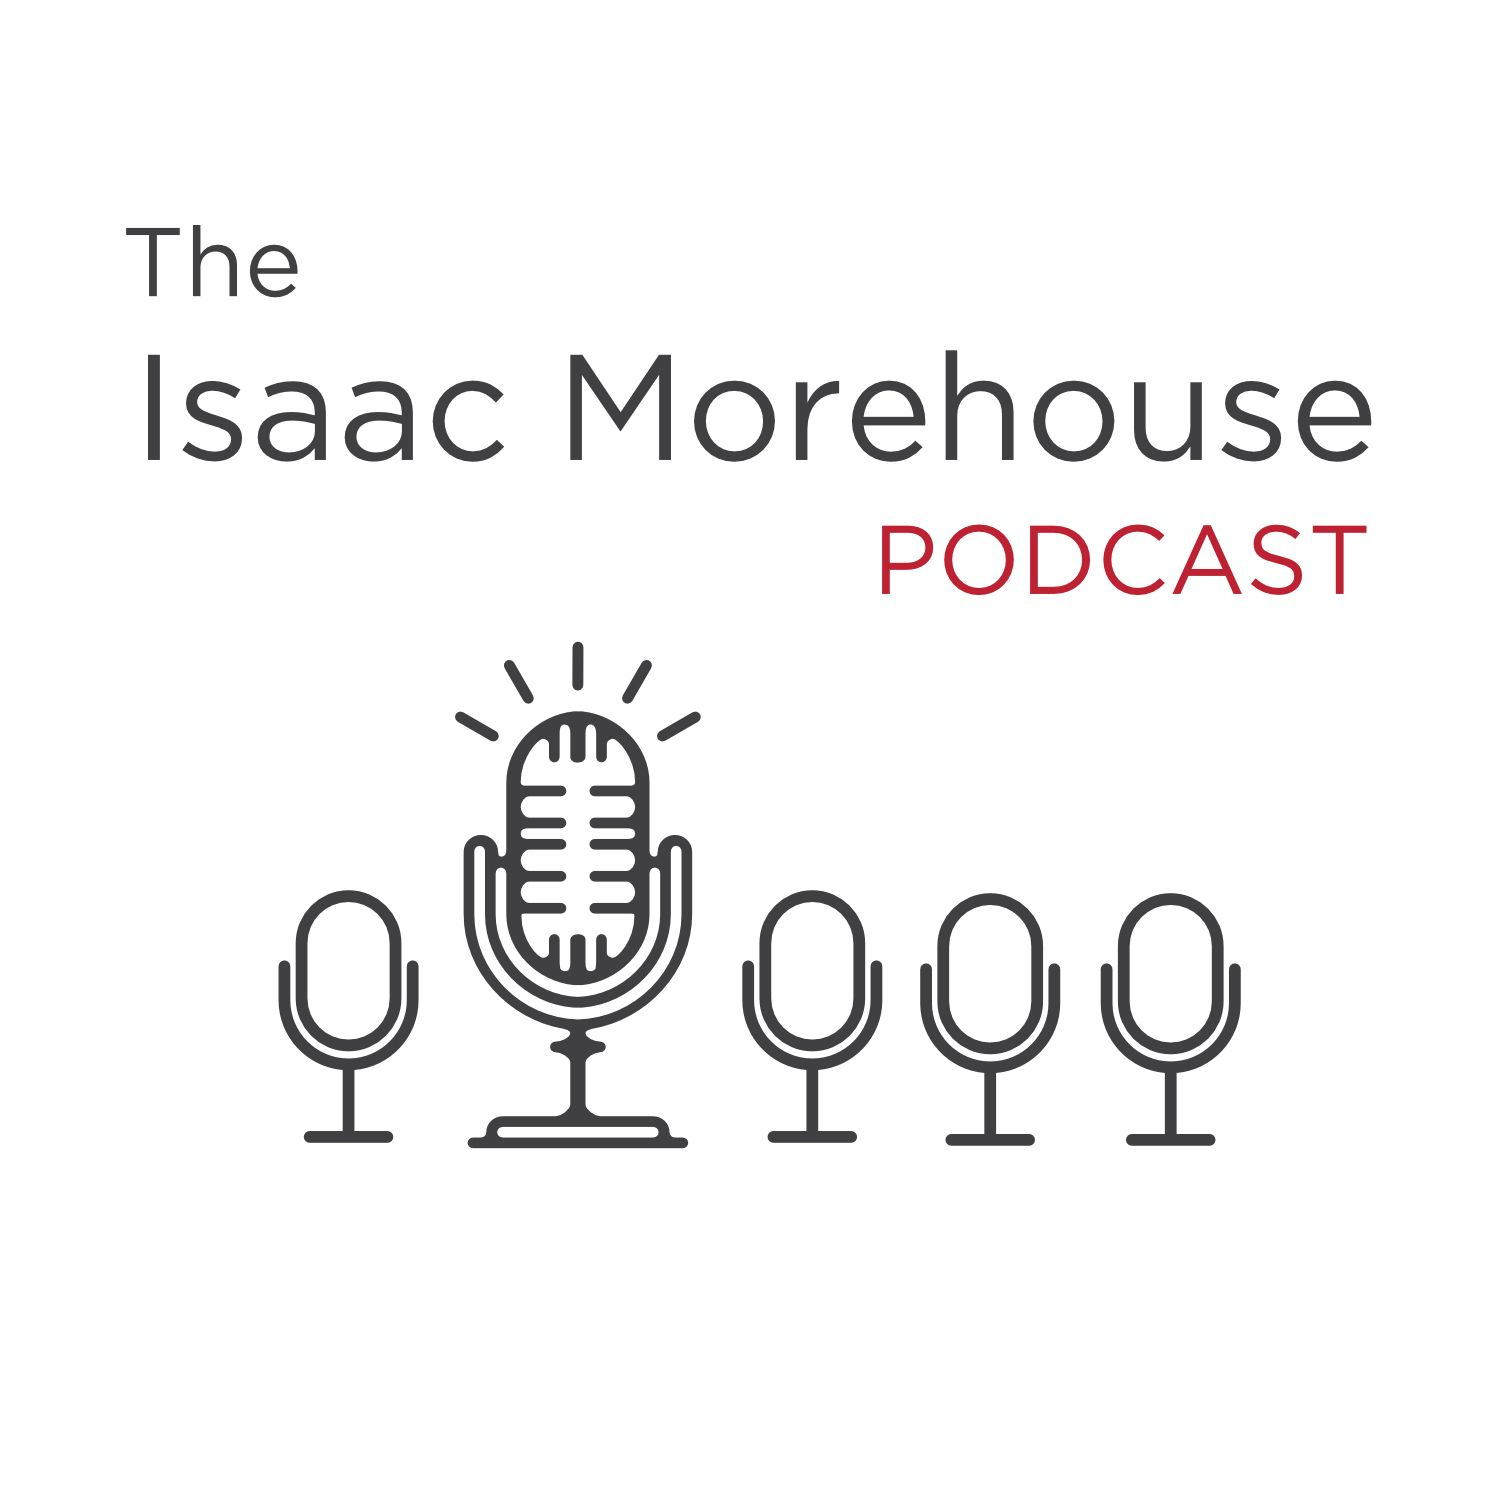 The Isaac Morehouse Podcast: A Weekly Exploration of Education, Entrepreneurship, Big Ideas, and Freedom. Guests from Startups, Business, Music, Art, Economics, Education, and a Wide Range of Professions on How to Live Free.